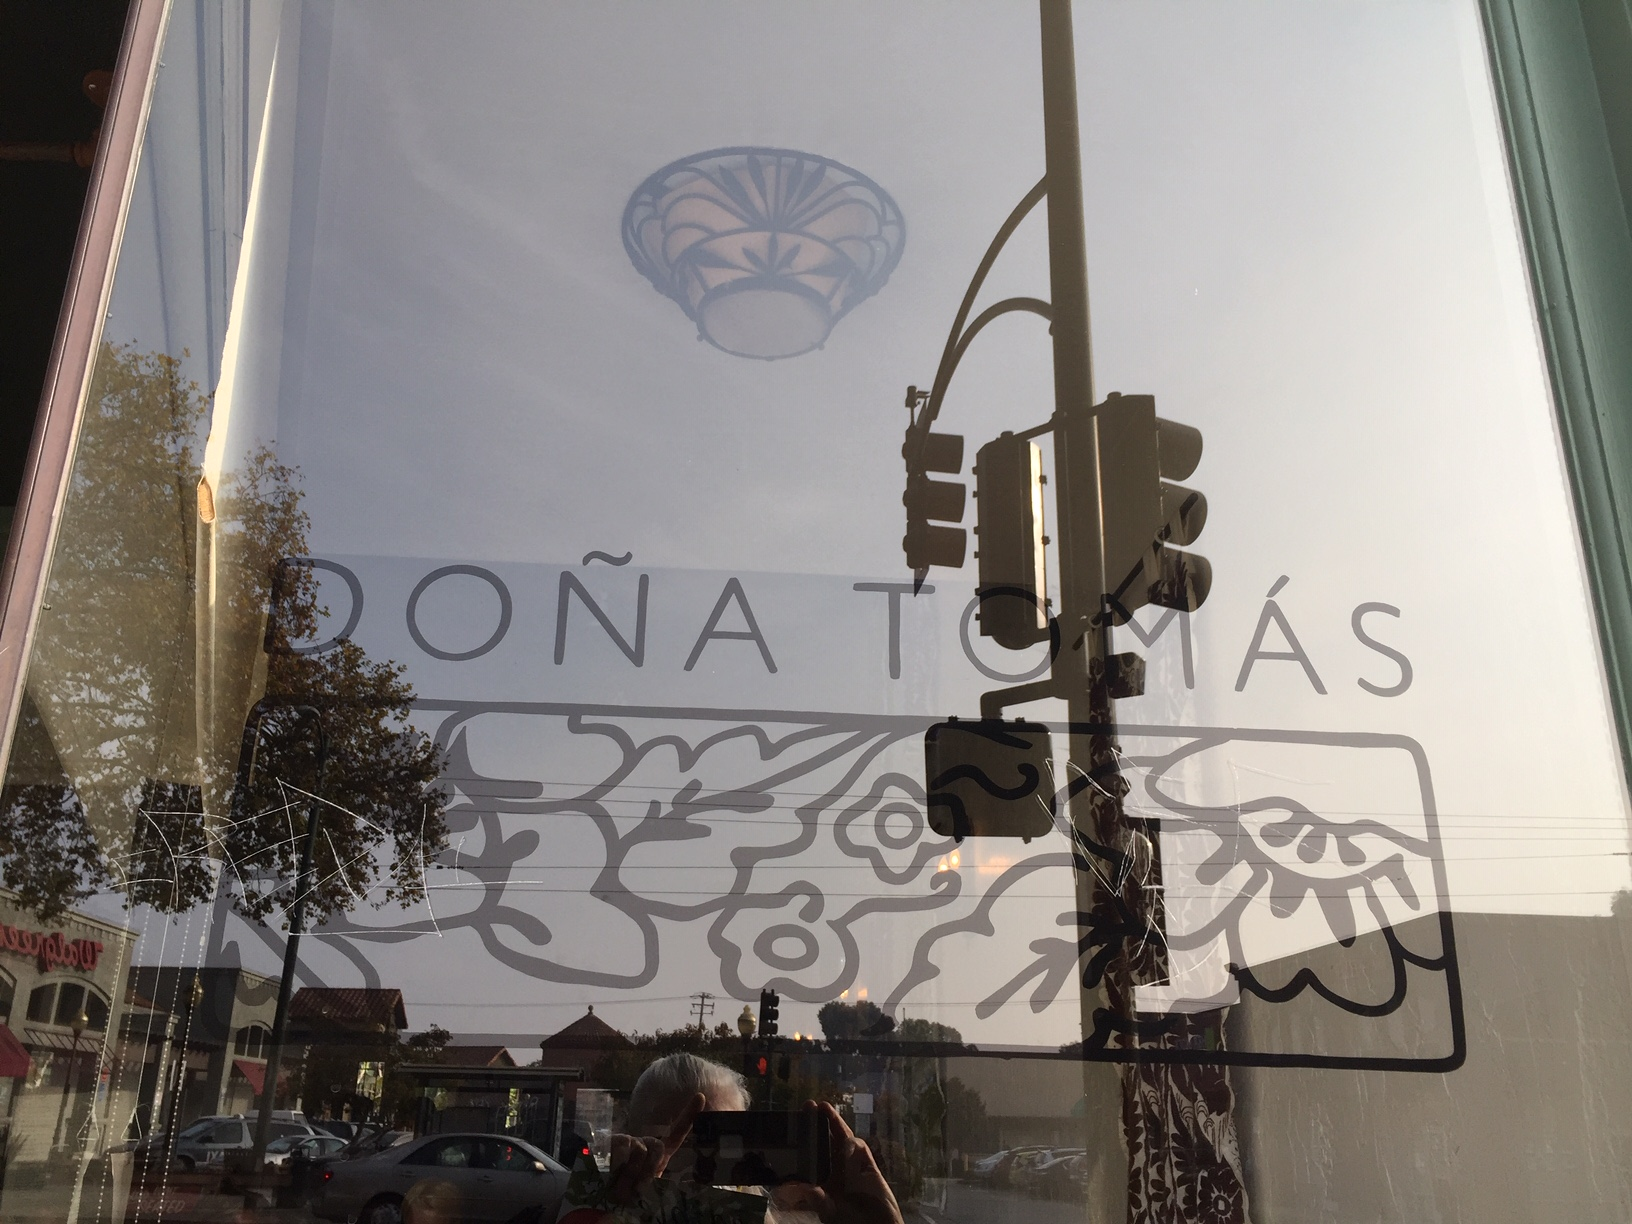 Doña Tomás has been serving classic Mexican dishes for 15 years on Telegraph Ave. in Oakland